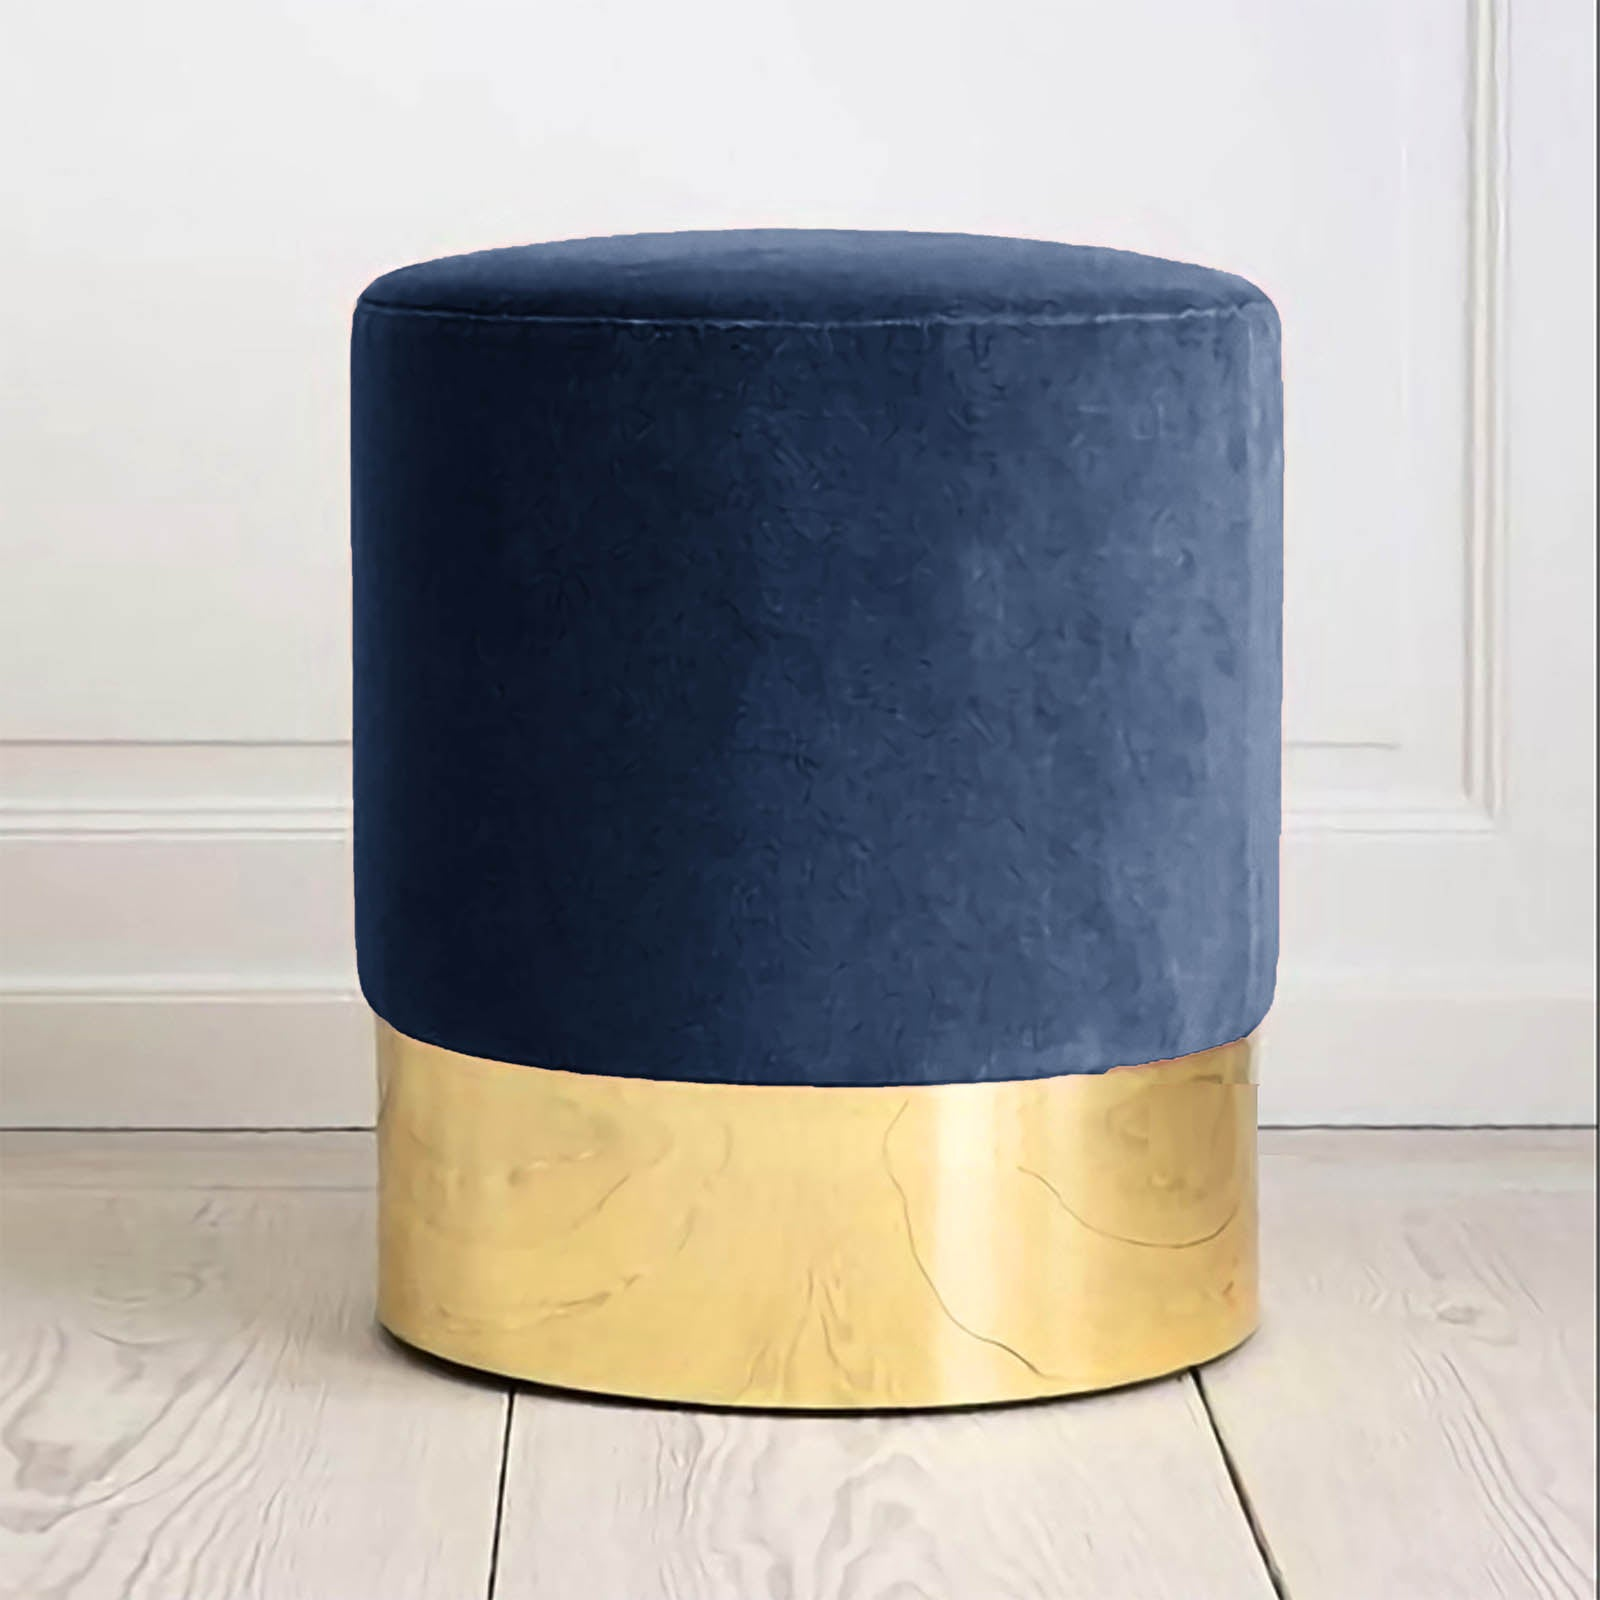 Velletri  Stool TG-196-B -  مقعد فيليتري - Shop Online Furniture and Home Decor Store in Dubai, UAE at ebarza